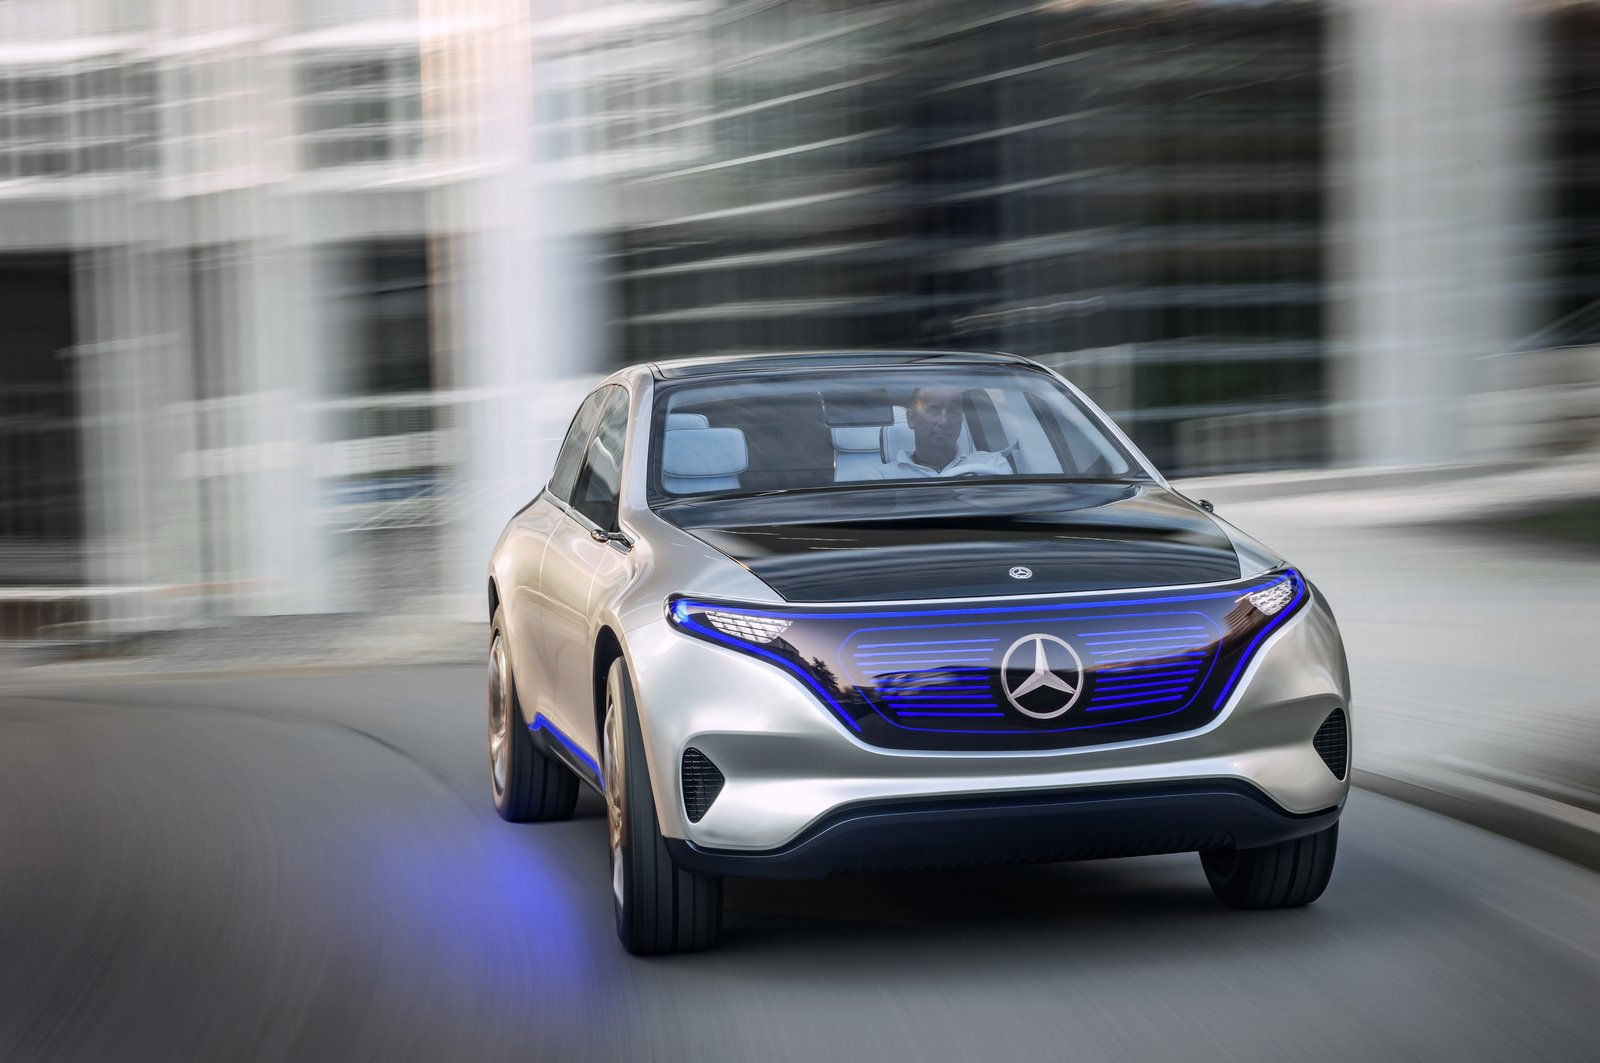 Daimler And BAIC To Make Electric Vehicles In China